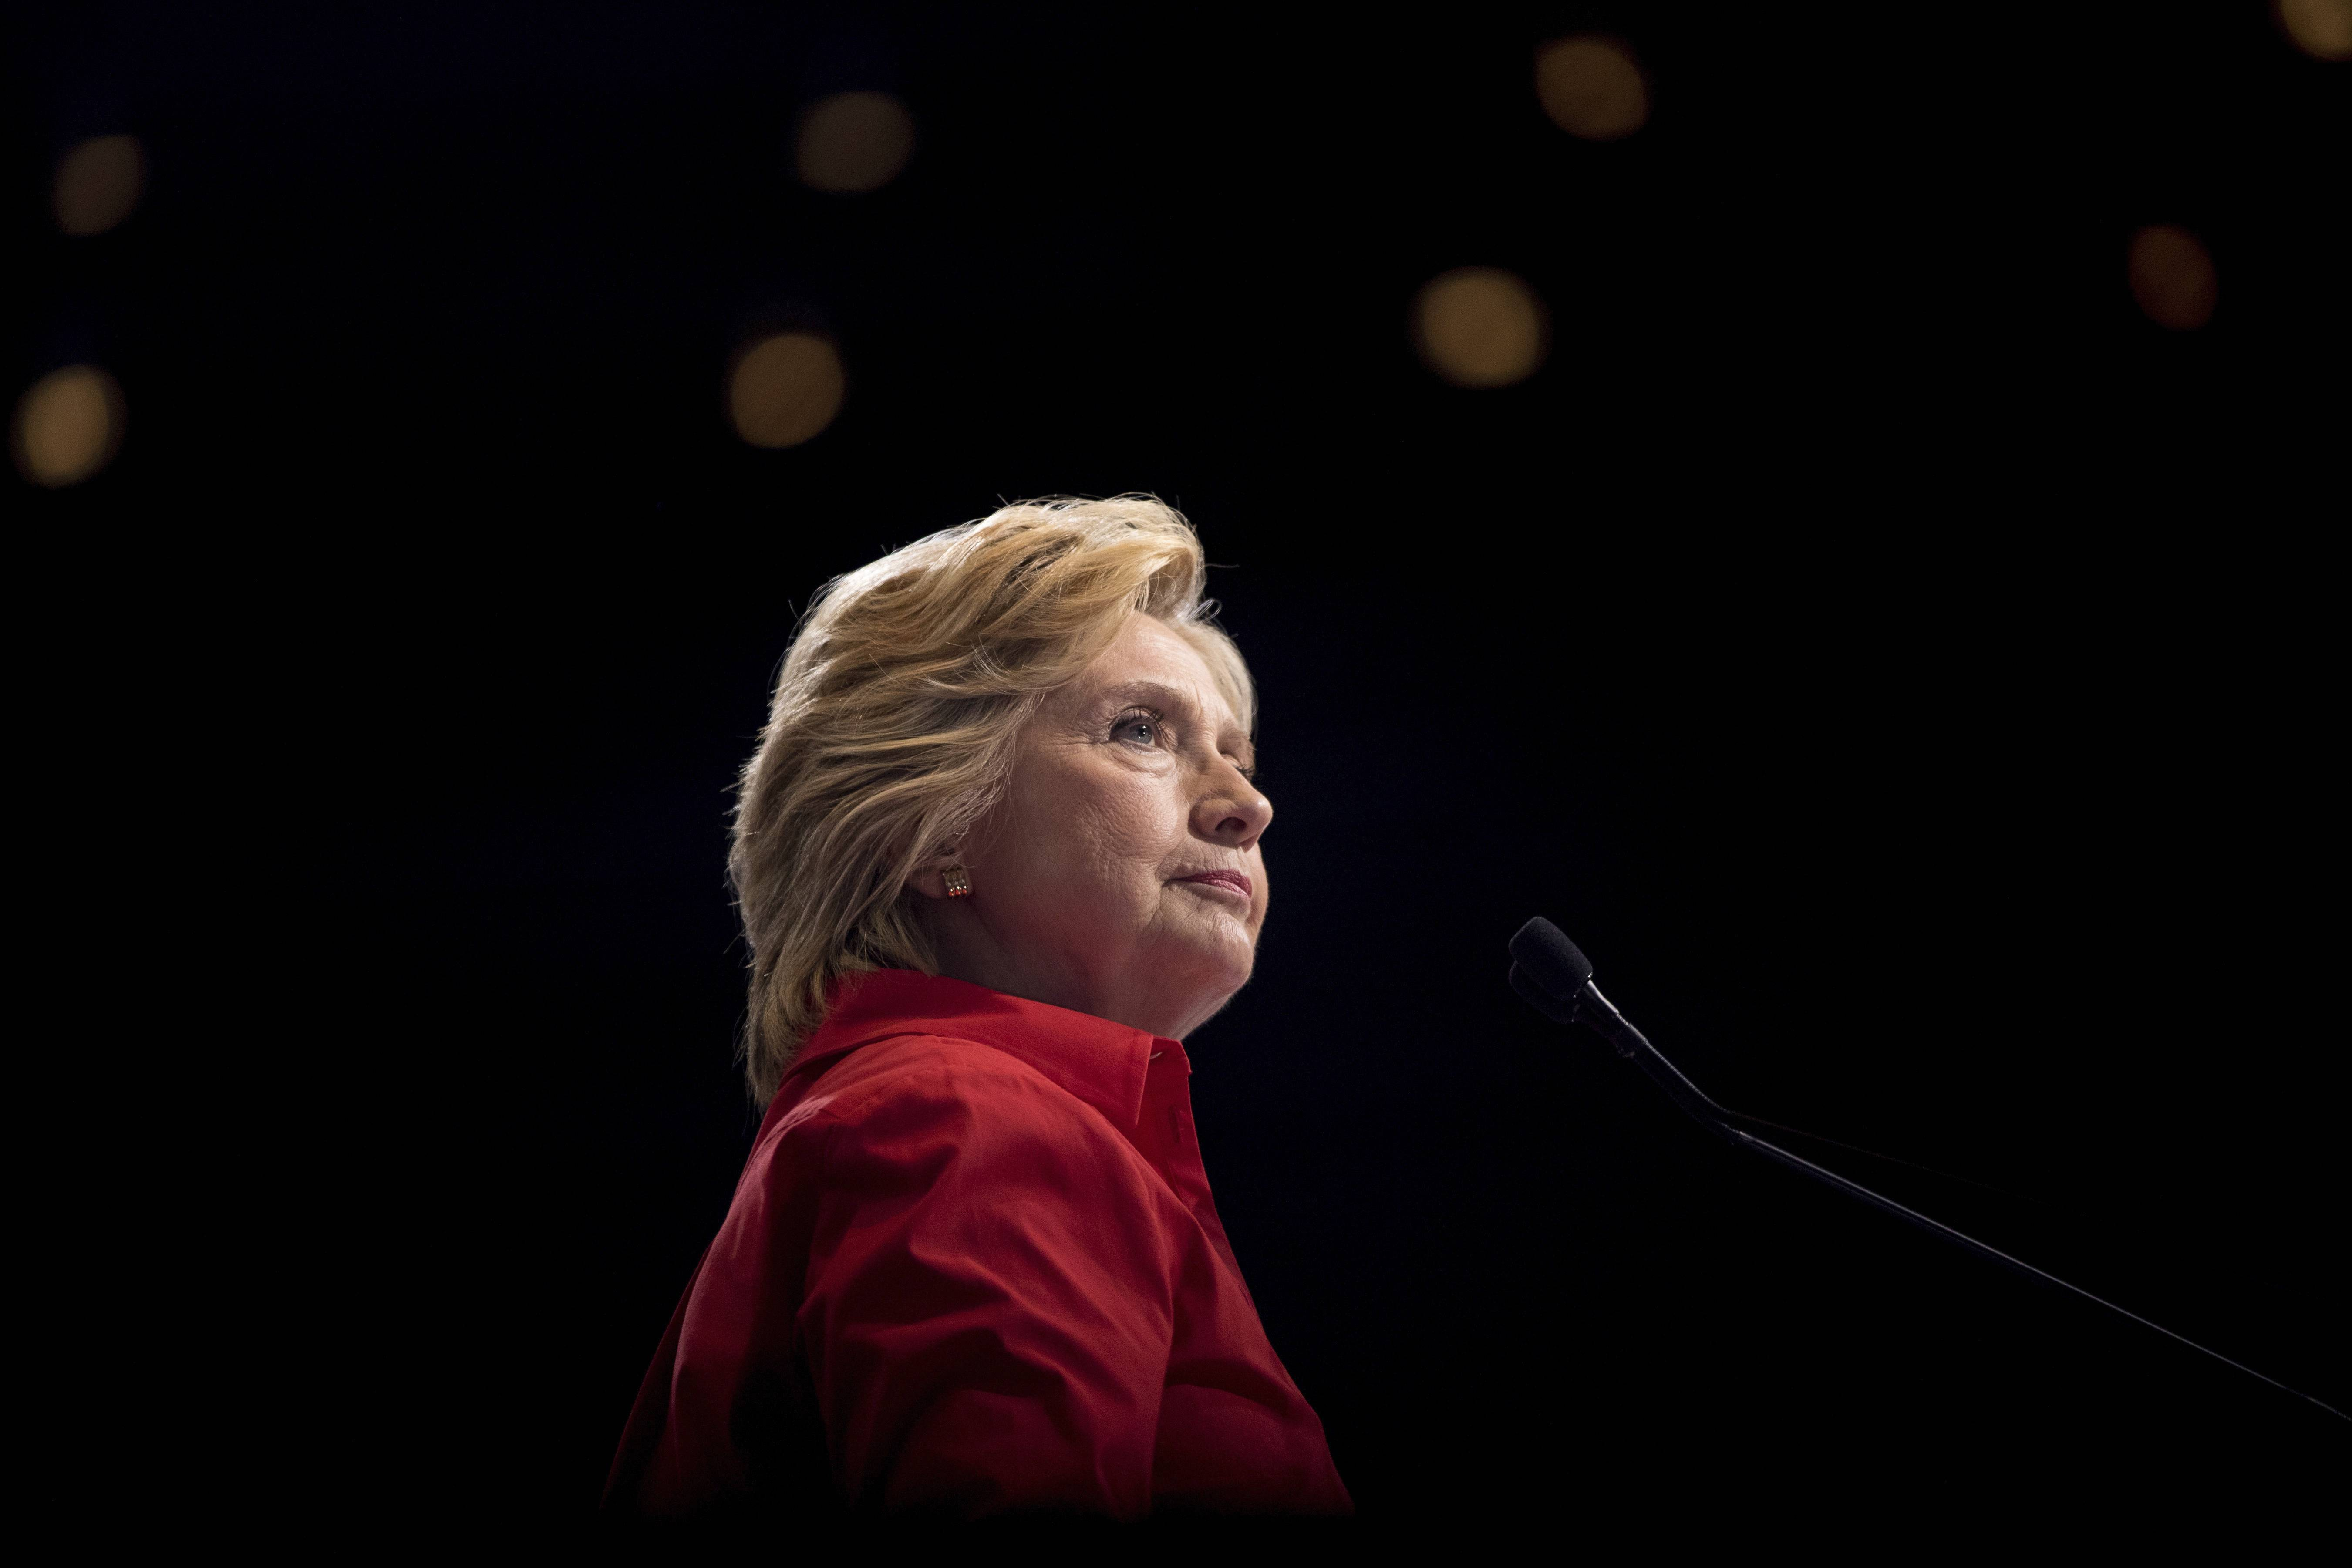 Democratic presidential candidate Hillary Clinton pauses while speaking at a rally in Pittsburgh during a bus tour through the rust belt. In 2016, after repeated attempts to break into various staffers' hillaryclinton.com email accounts, the hacking group known as Fancy Bear took a new tack, targeting top Clinton lieutenants at their personal Gmail addresses.